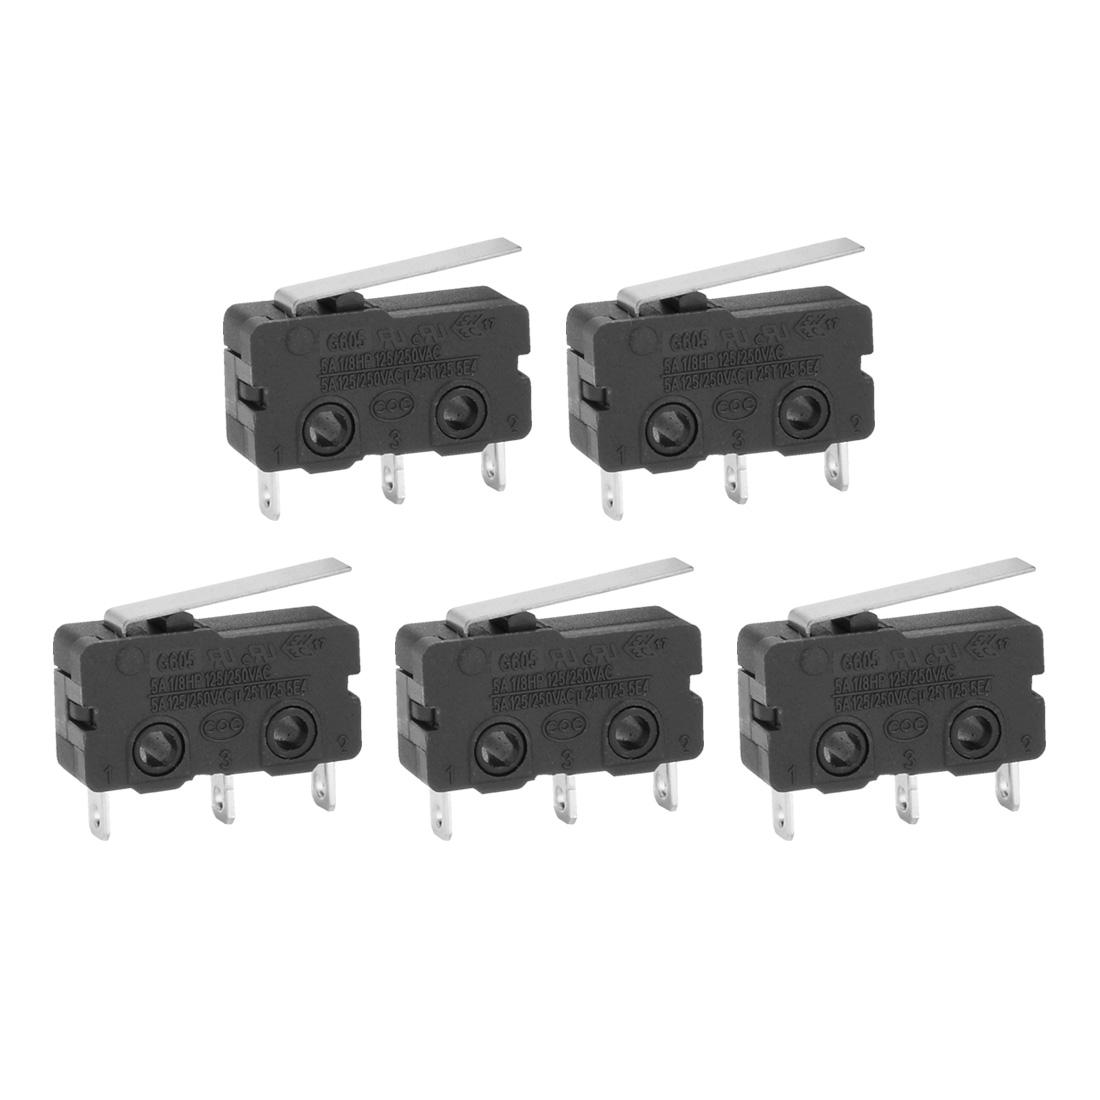 5Pcs G605-150S03A AC125/250V Long Lever Arm Subminiature SPDT Snap Action Micro Limit Switch